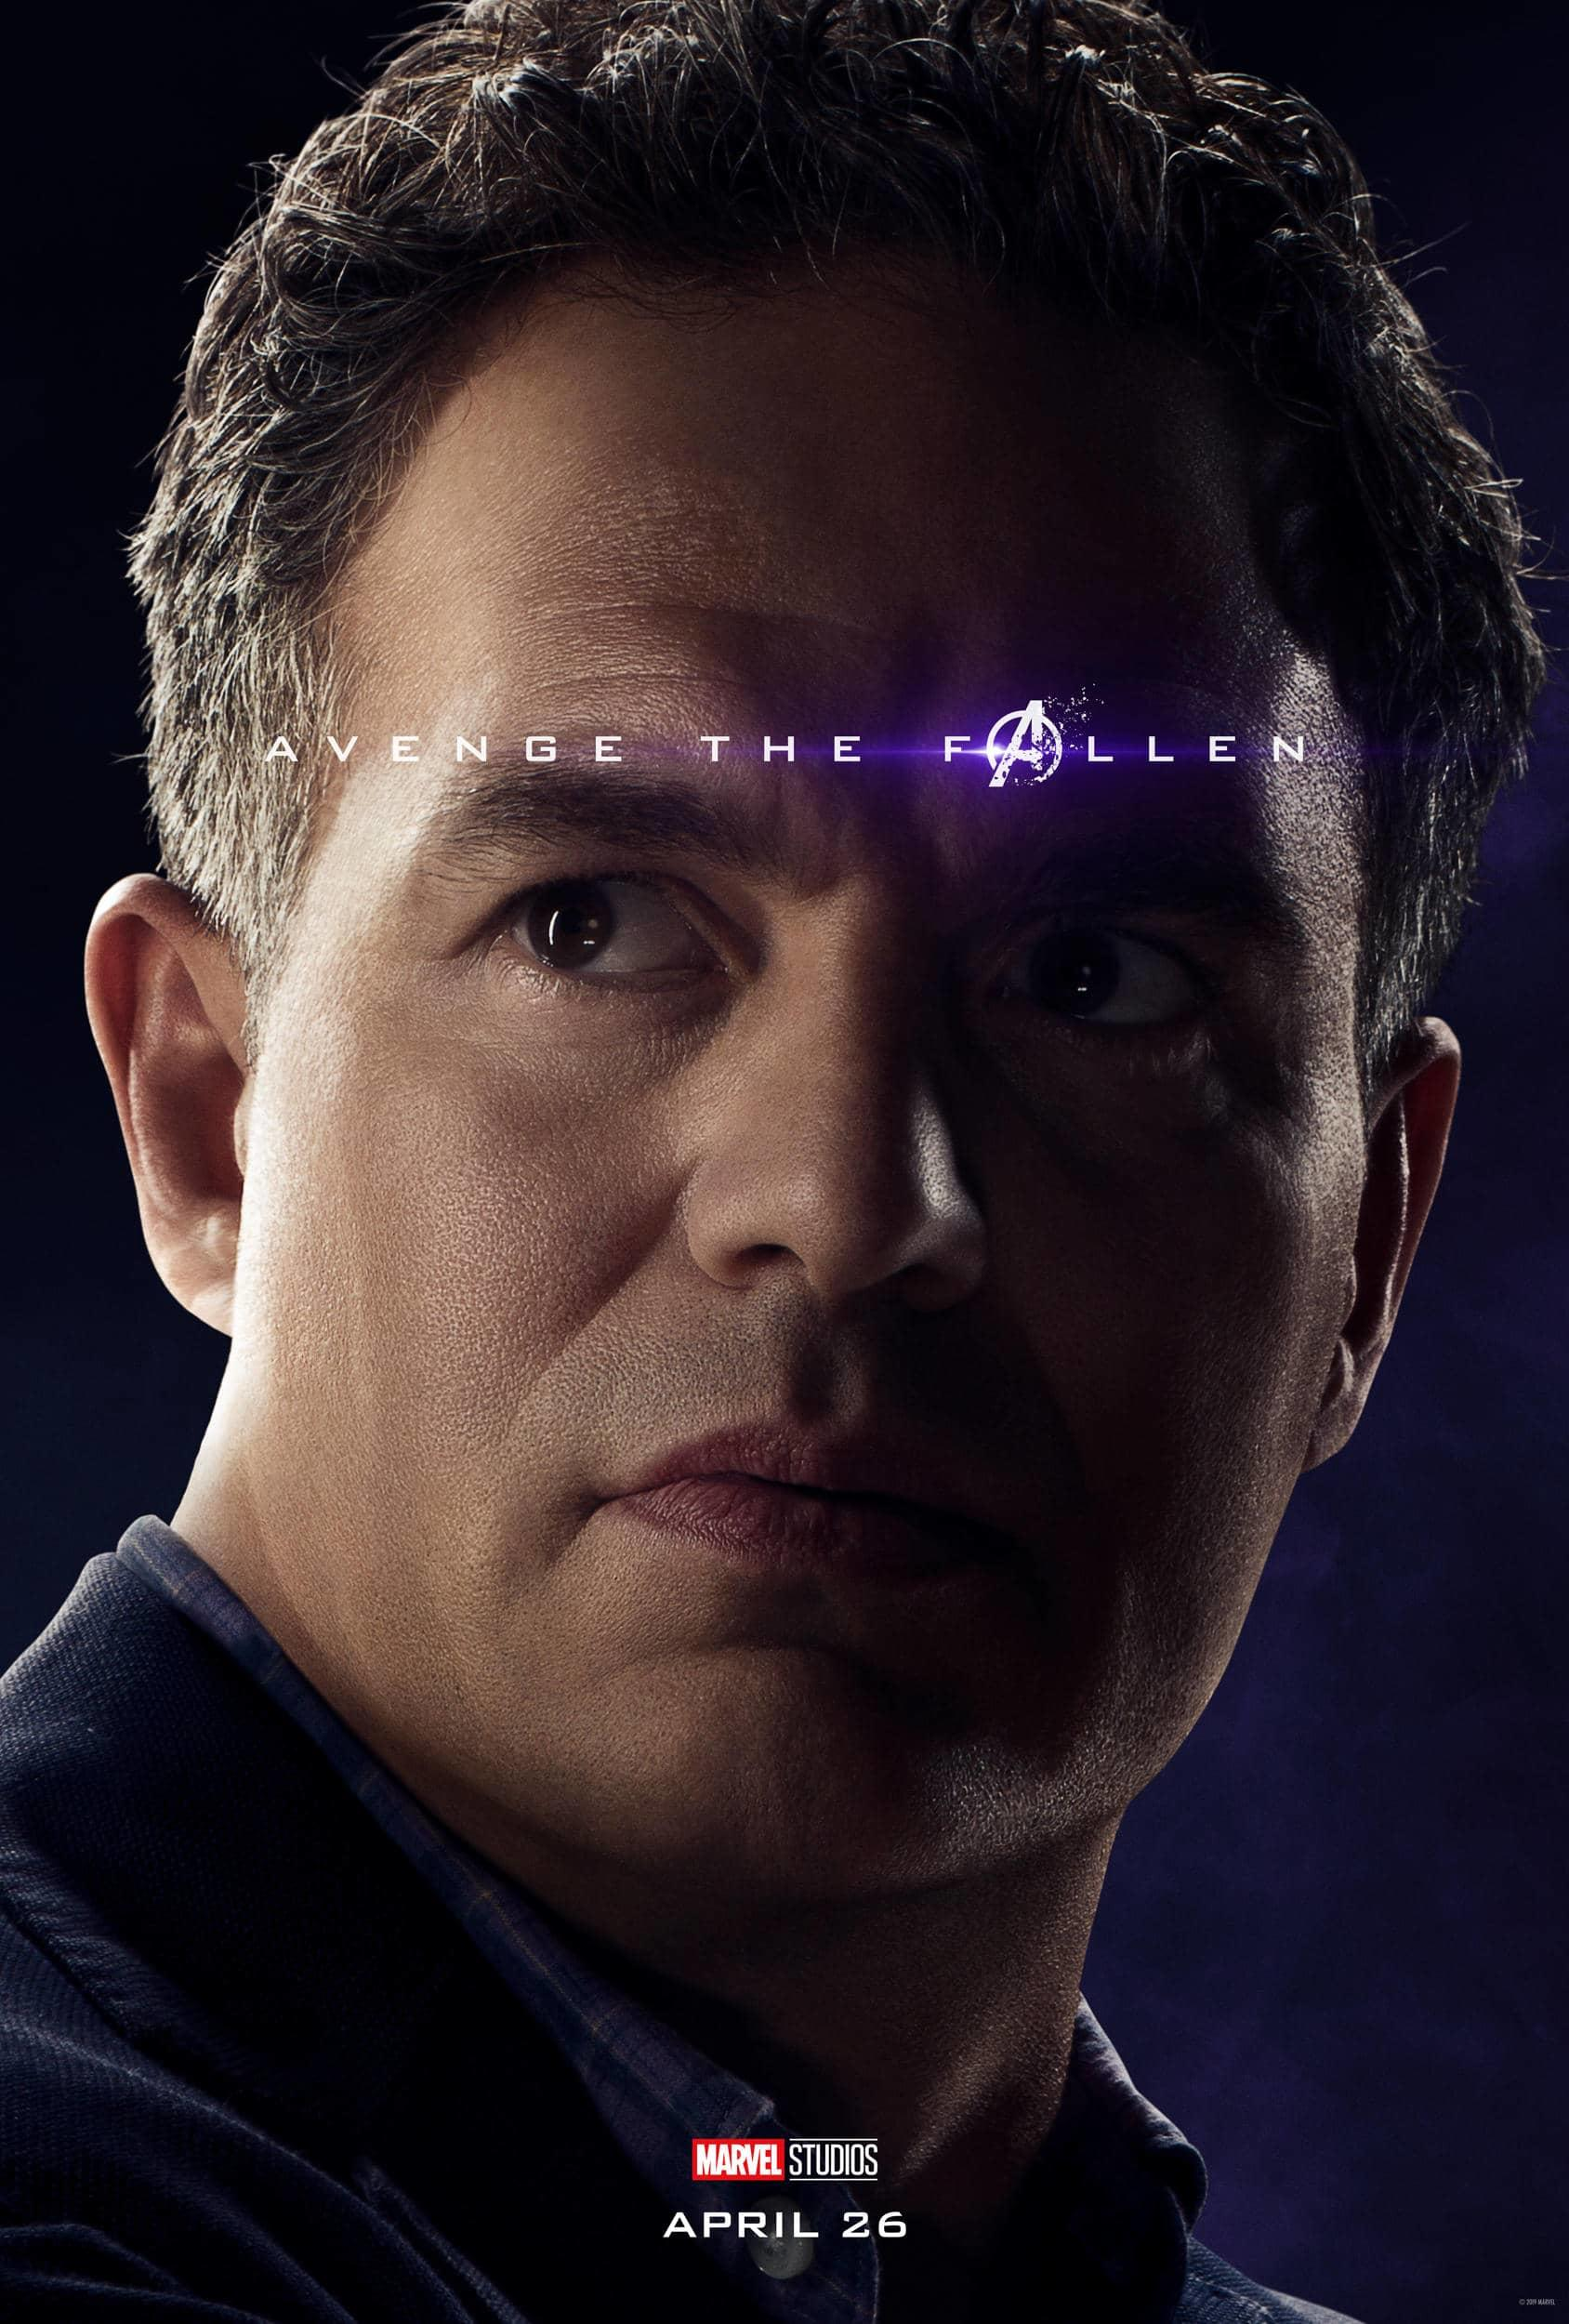 Marvel Studios' Avengers: Endgame Movie Cast Hulk (Bruce Banner) Mark Ruffalo